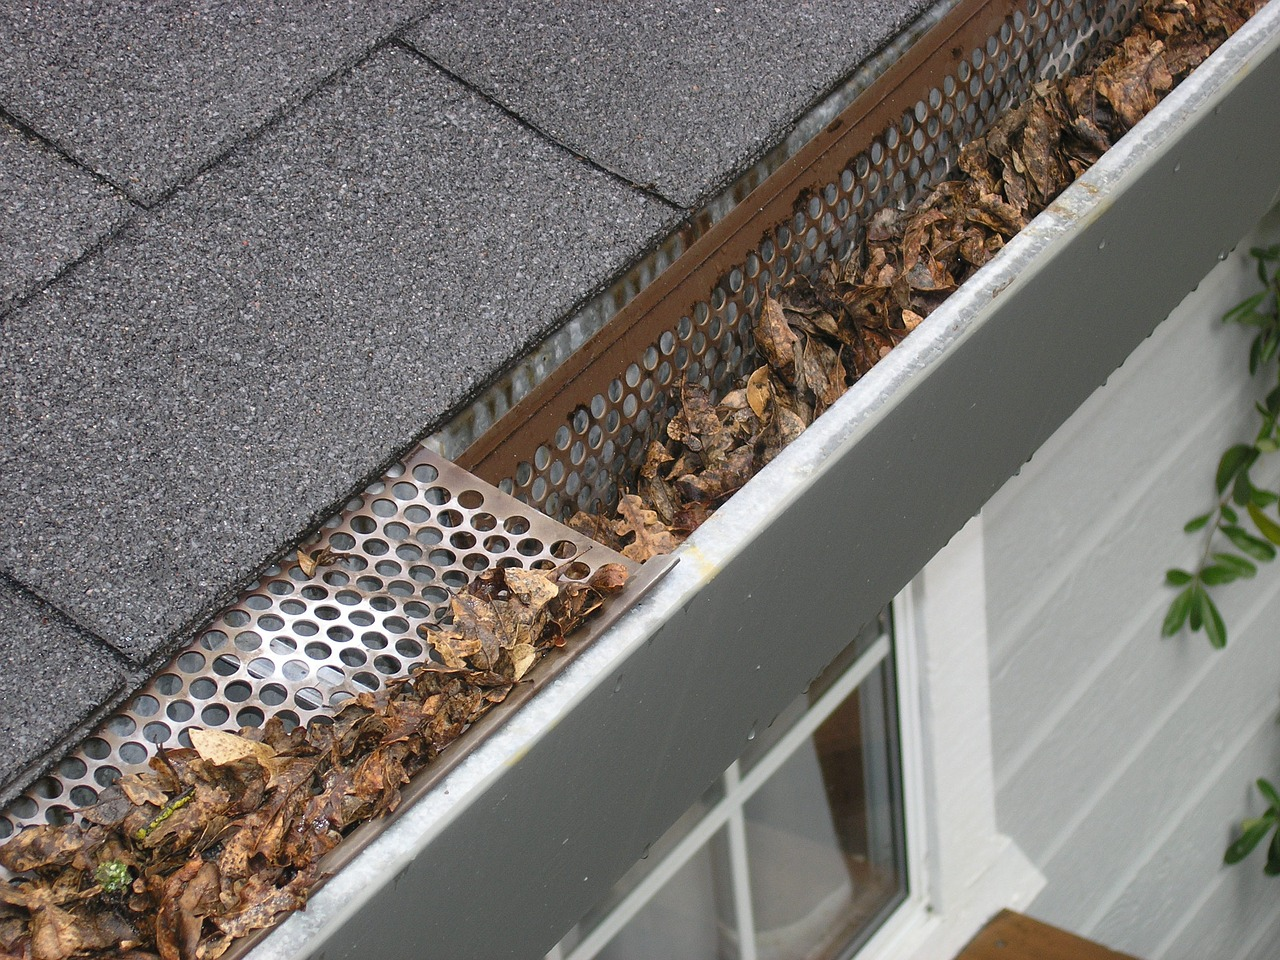 Gutters cleaning service Mableton GA